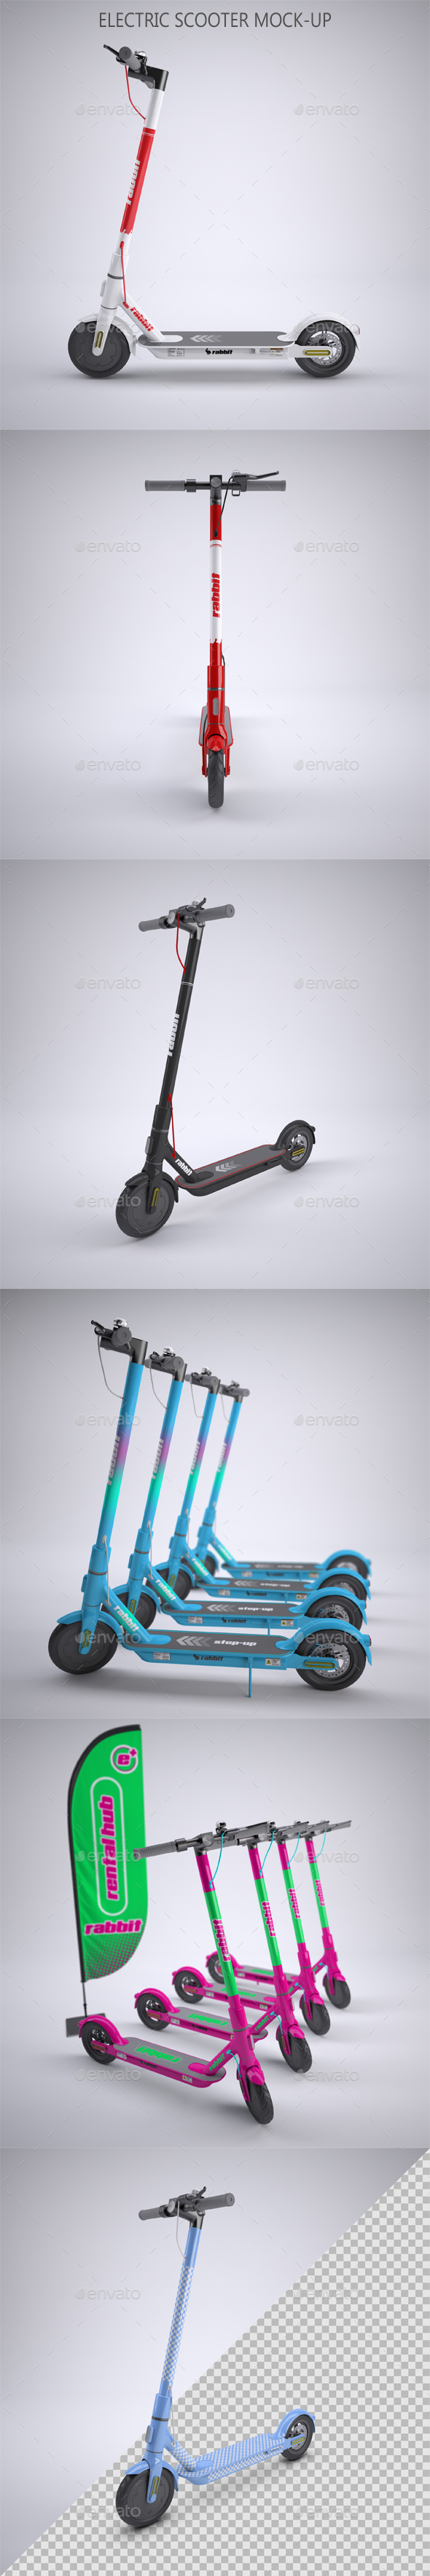 Electric Scooter for Rent Mock-up